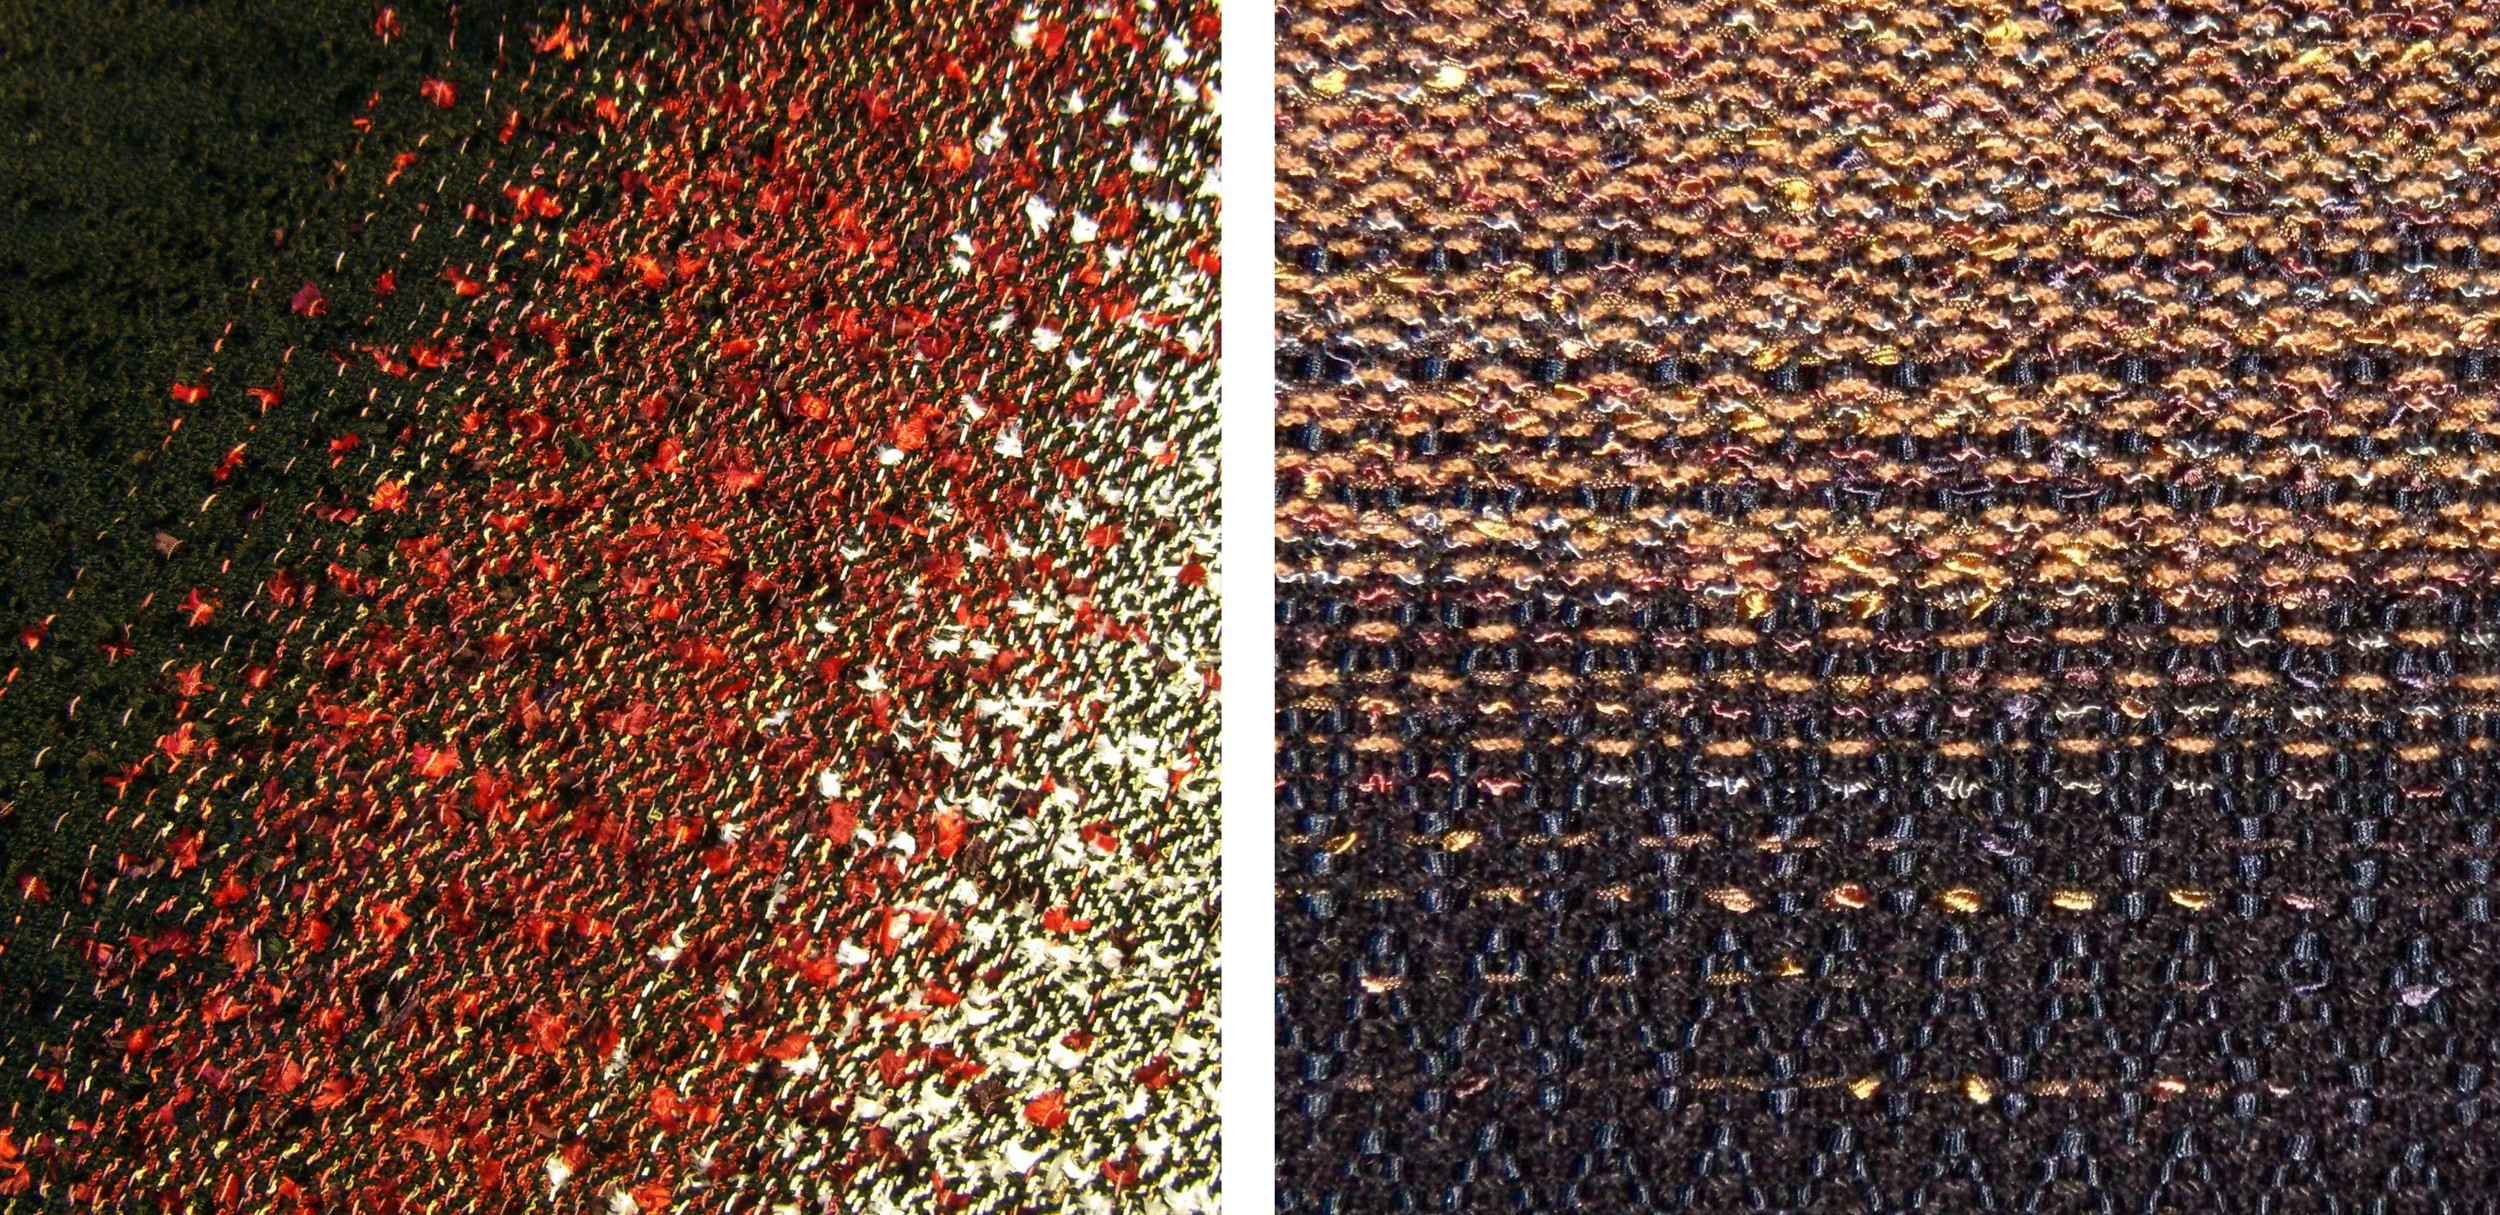 Black & Red to White, and Bronze to Black GRADATIONS.